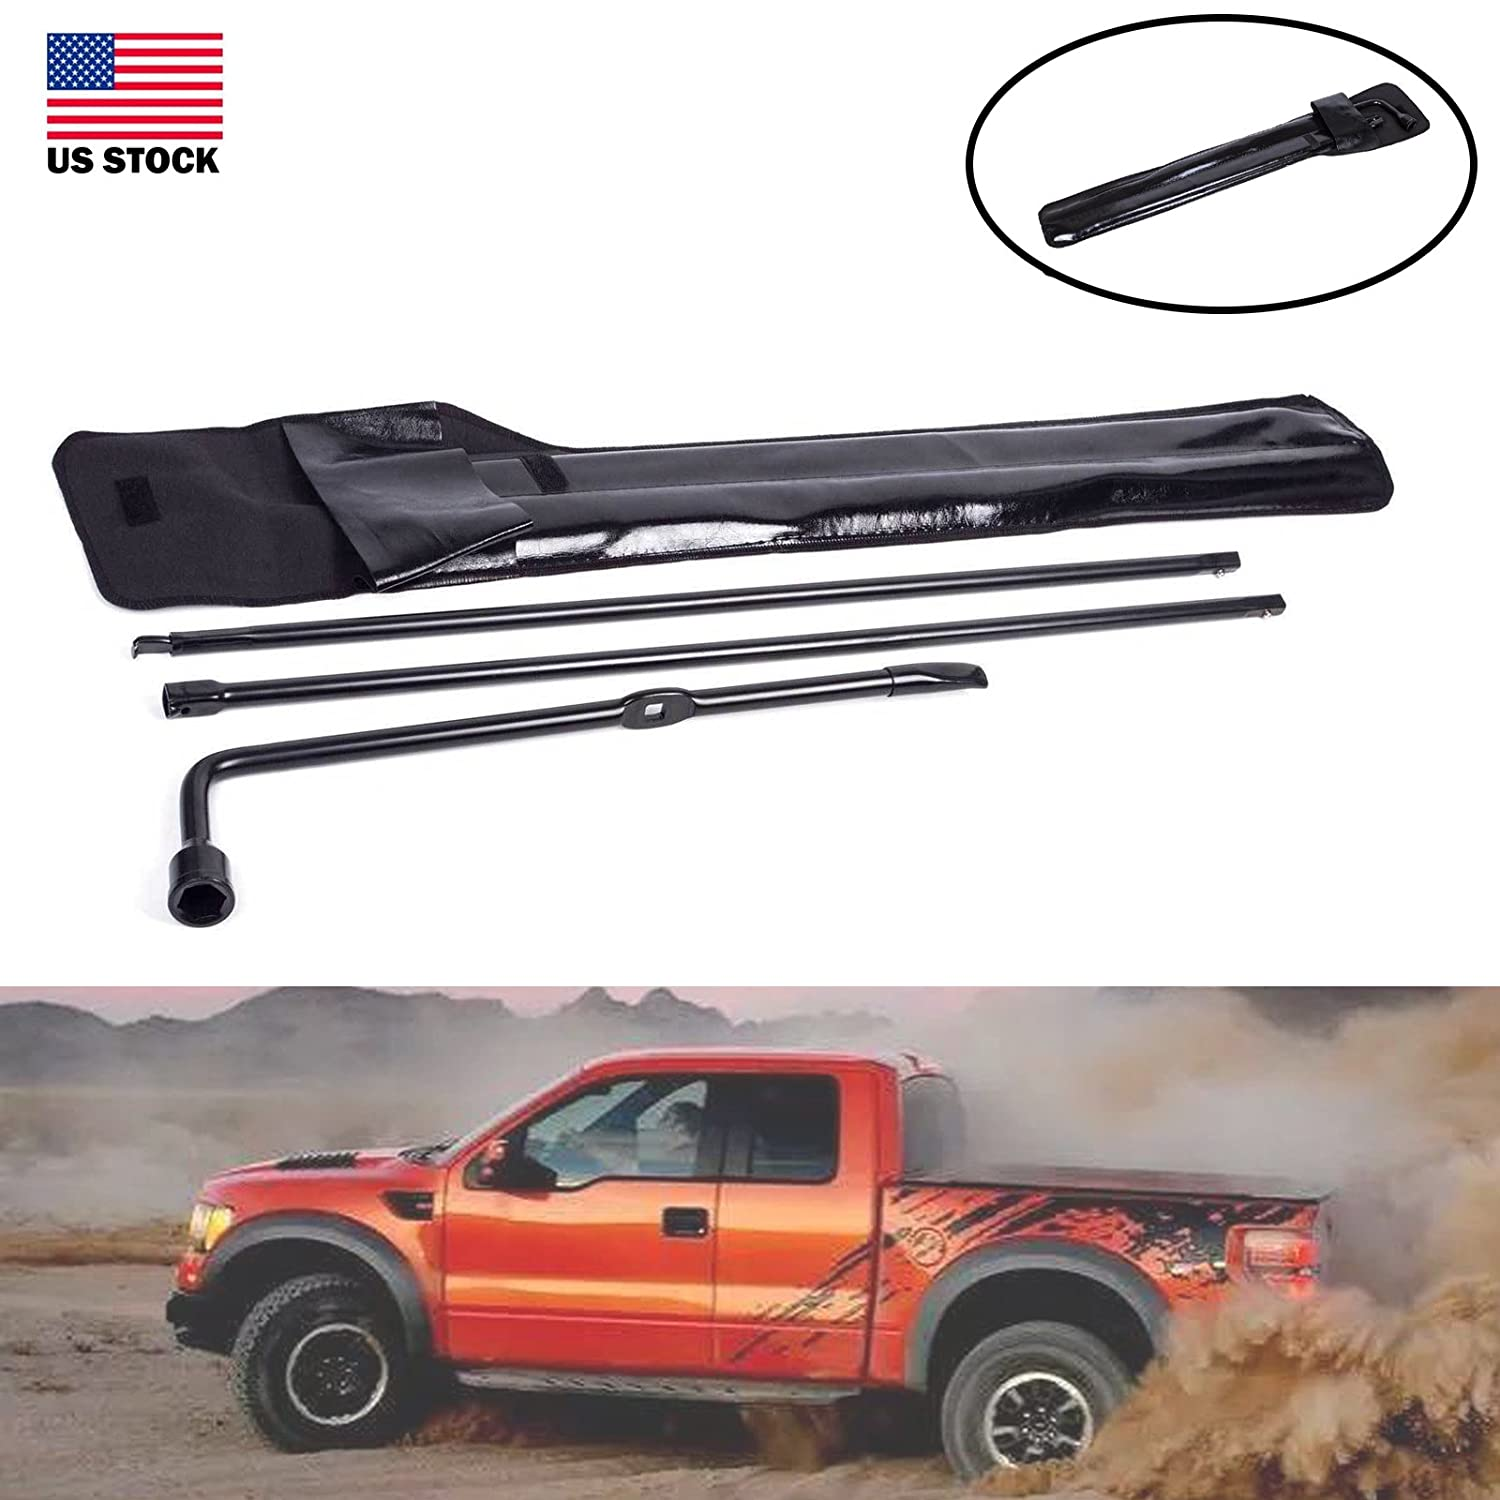 For Ford F250 F350 F450 F550 Super Duty 03-07 Portable Wrench Set Kit with Carry Case OEM Care Tire Removal Tool DICN Factory 4333085344